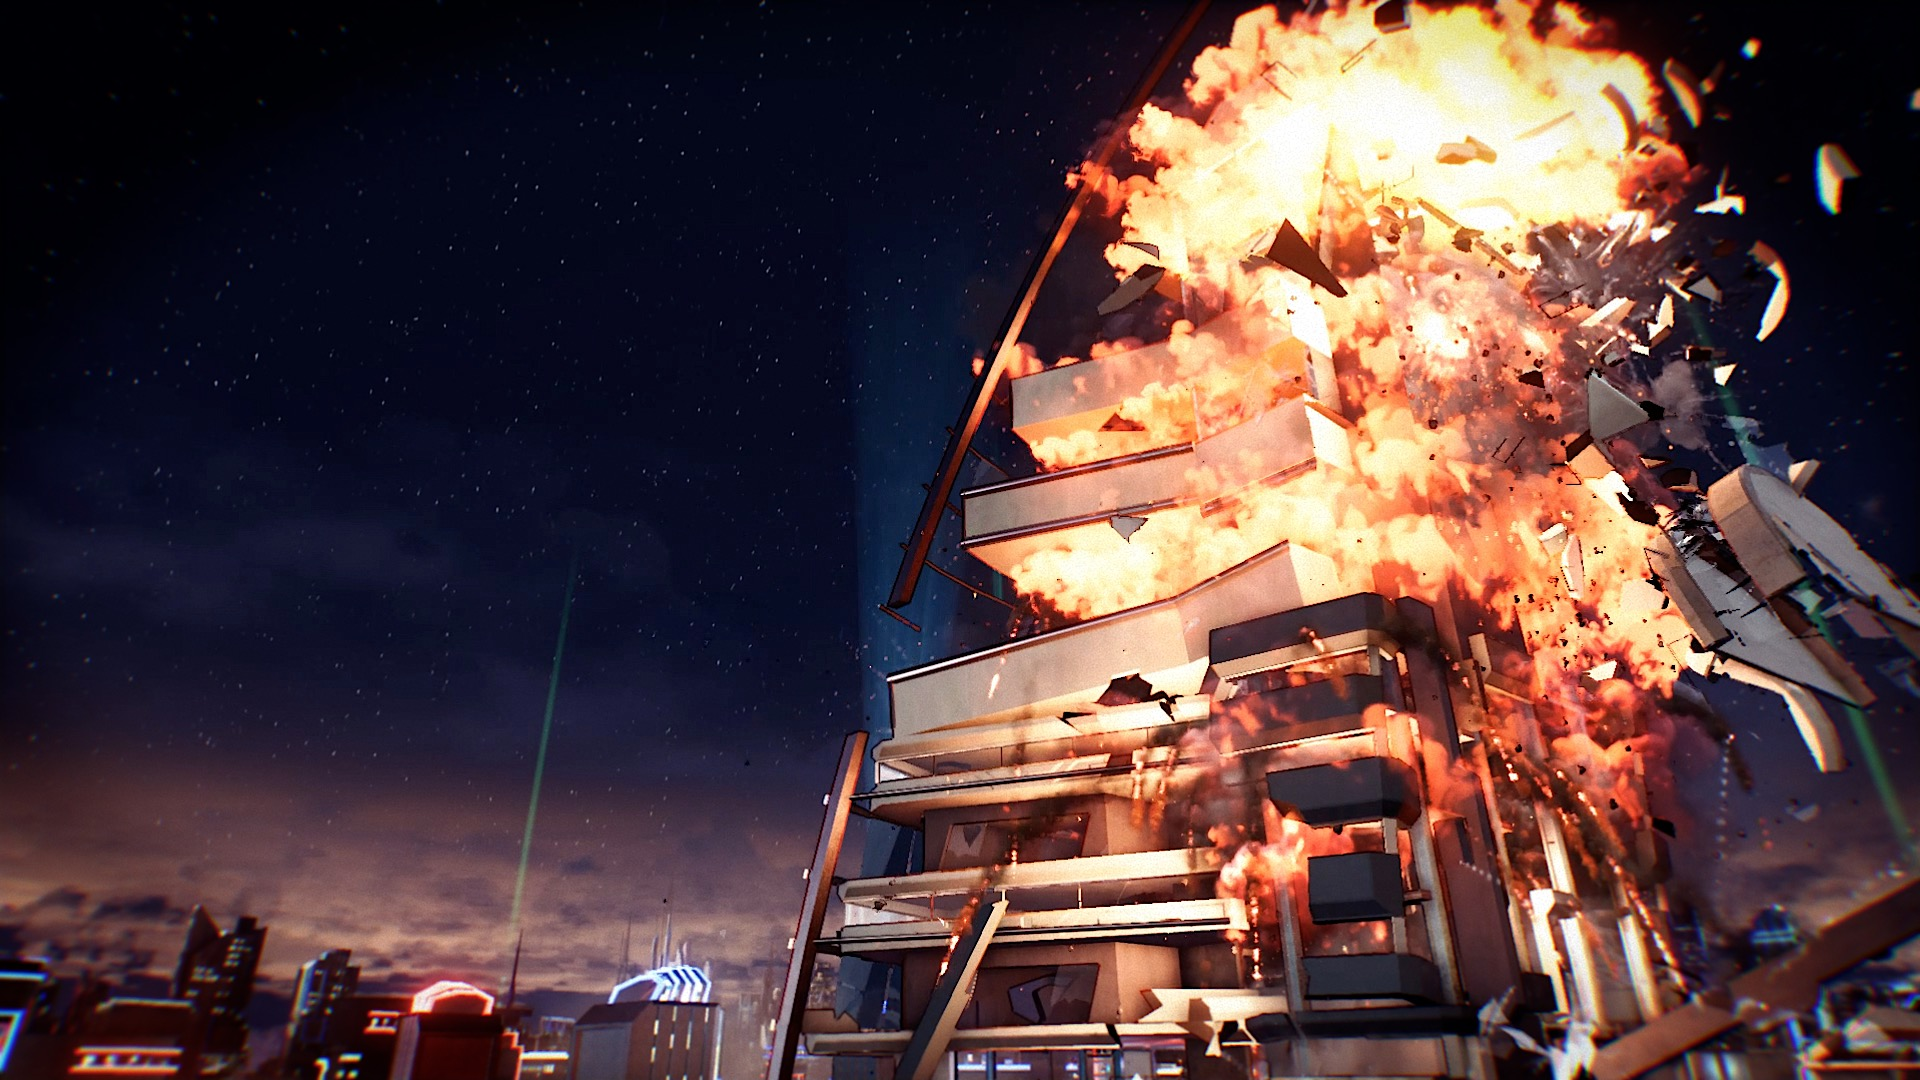 [WoA] Les Atlantes Rebelles attaquent Coast City ! Crackdown-3-multi-explosion.0